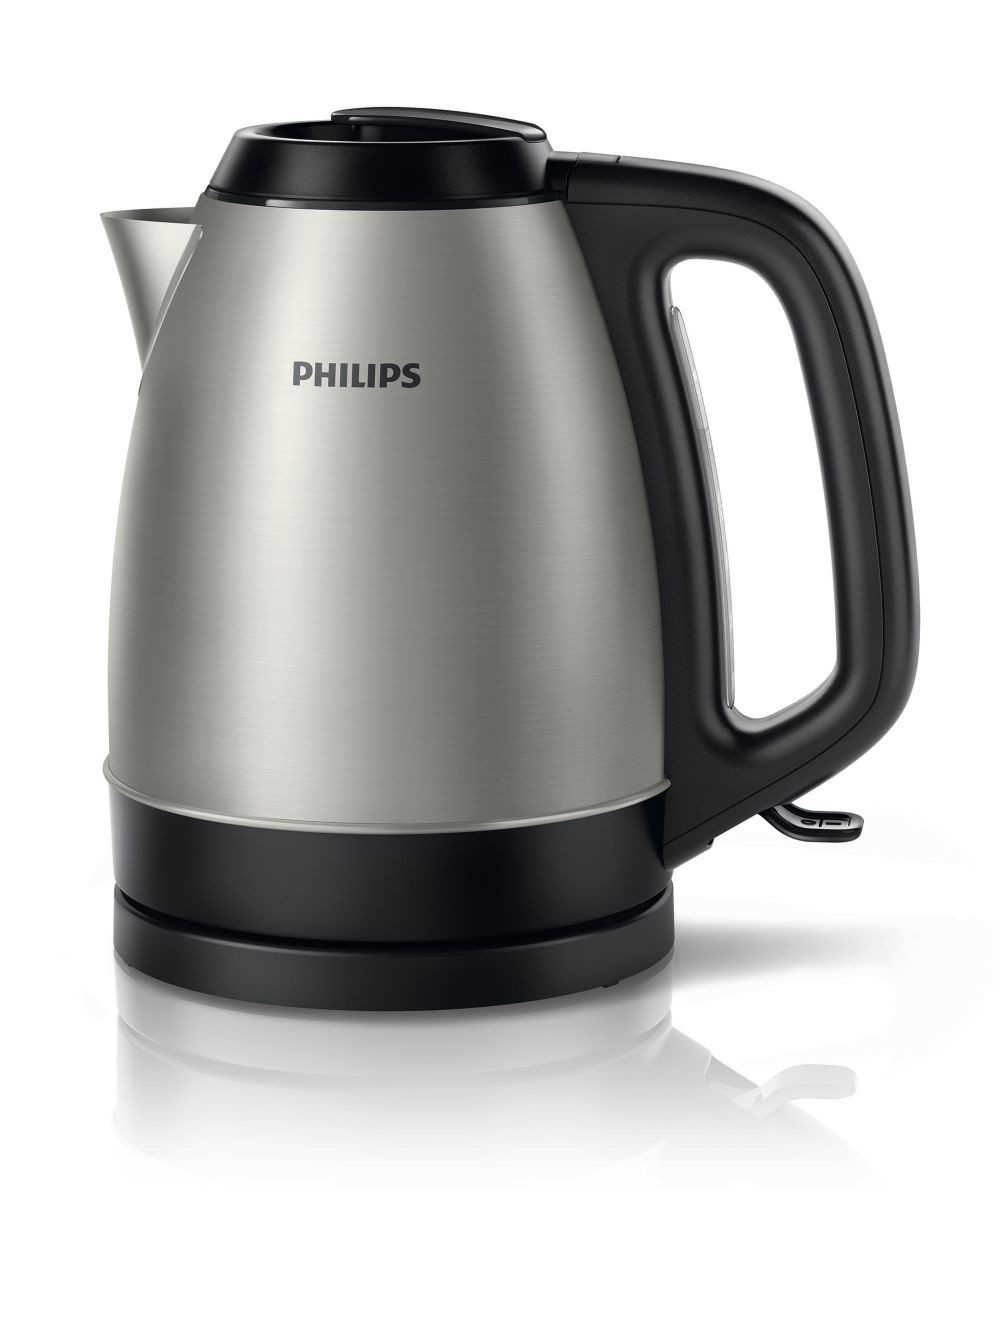 Philips HD9305/21 Standard kettle, Stainless steel, Stainless steel, 2200 W, 360° rotational base, 1.5 L